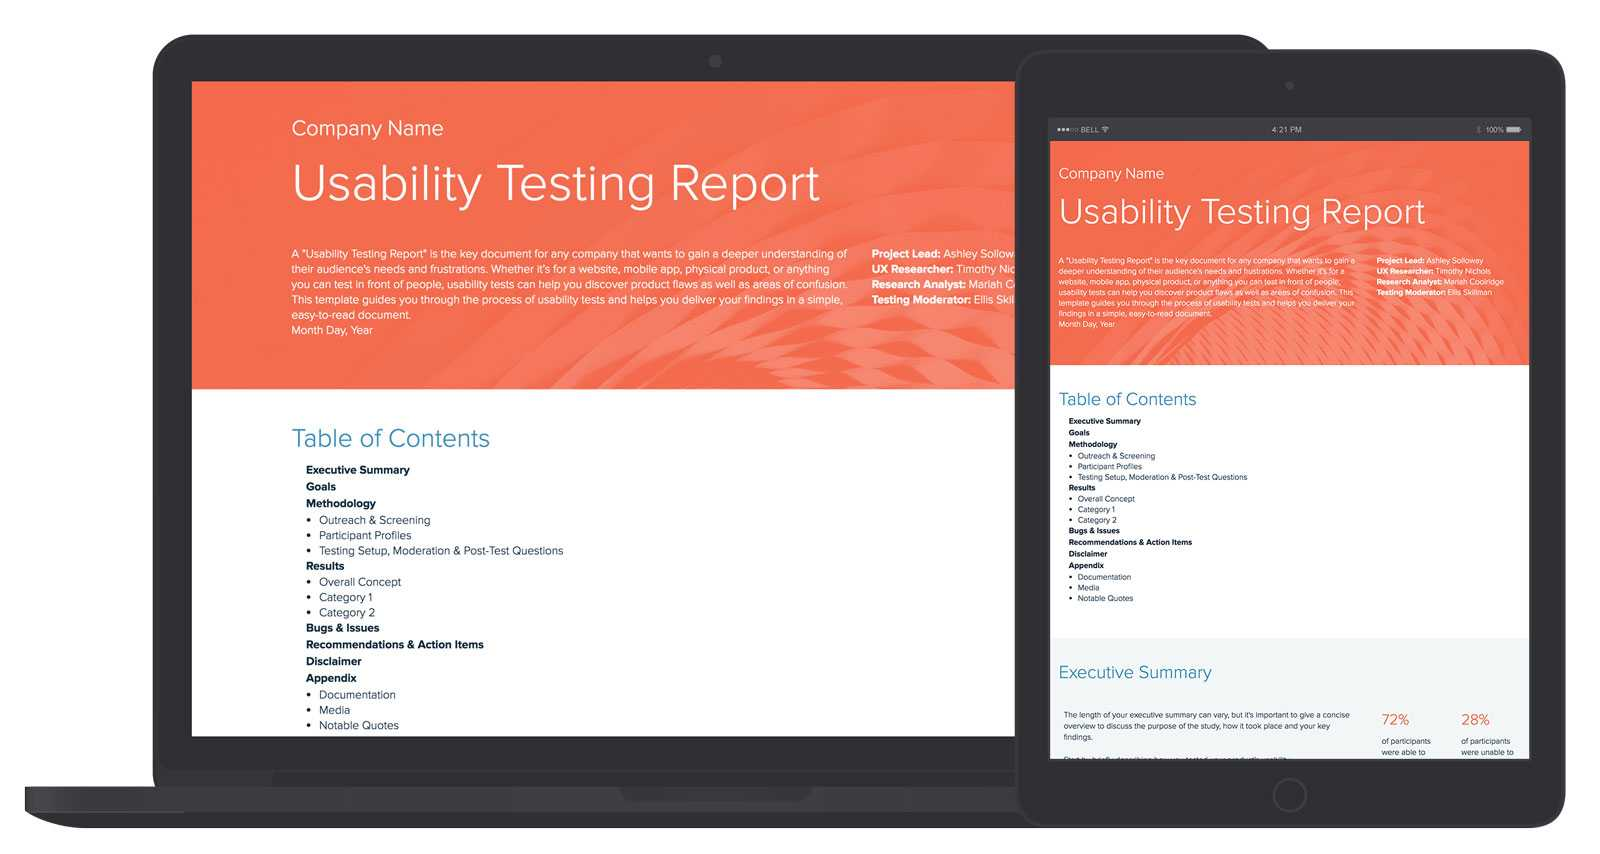 Usability Testing Report Template And Examples | Xtensio Within Usability Test Report Template